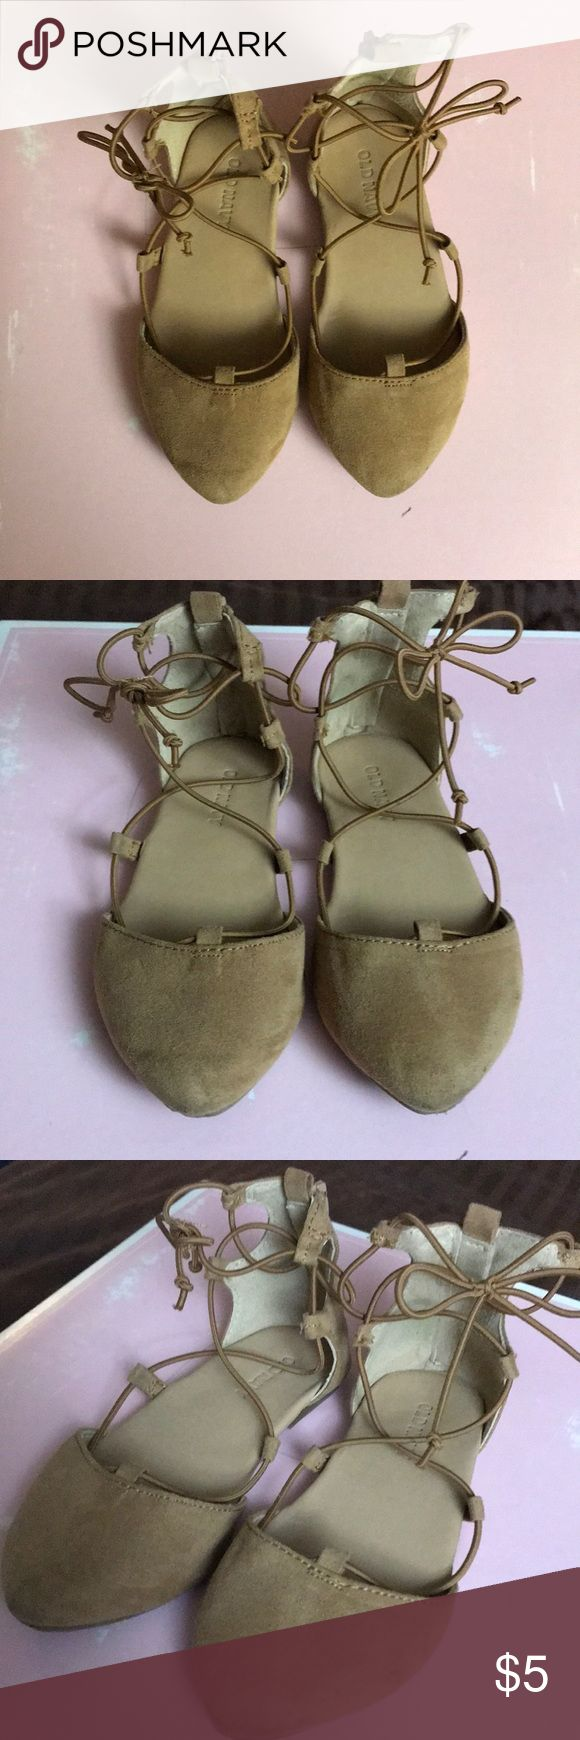 Brown suede baby girls dress shoes Brown suede little girls dress shoes  Lace up and zip heel Super cute! Old Navy Shoes Dress Shoes